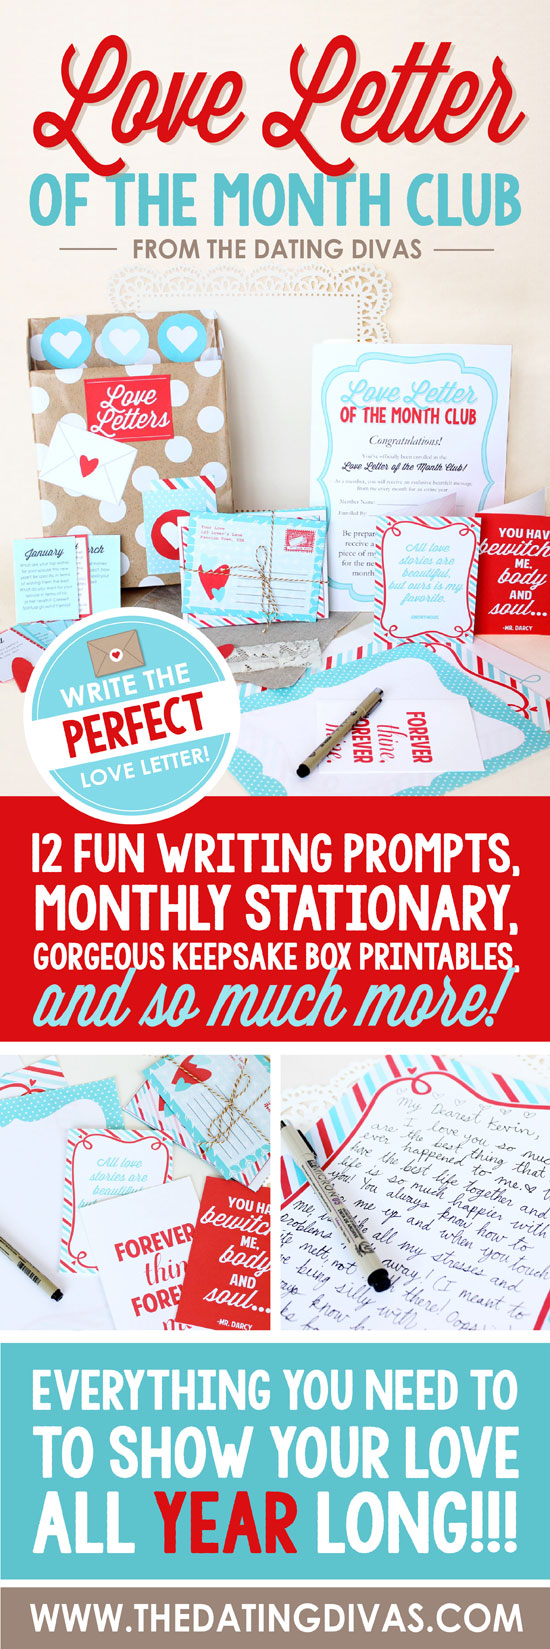 Love Letter of the Month Club – The Perfect Gift for the One You Adore!